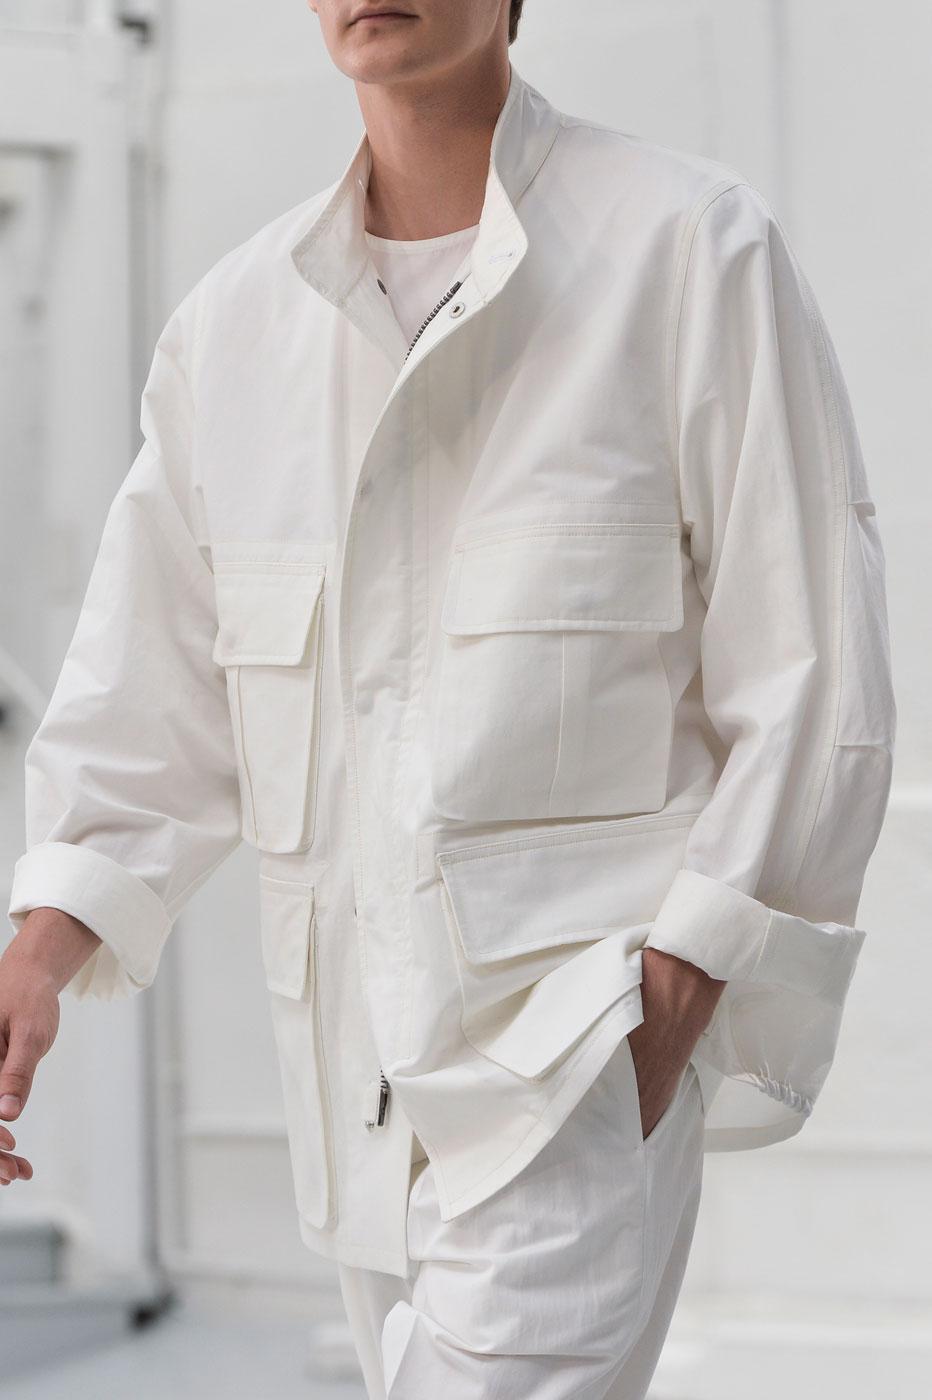 Christophe-Lemaire-mens-fashion-runway-show-close-ups-the-impression-spring-2015-001.jpg